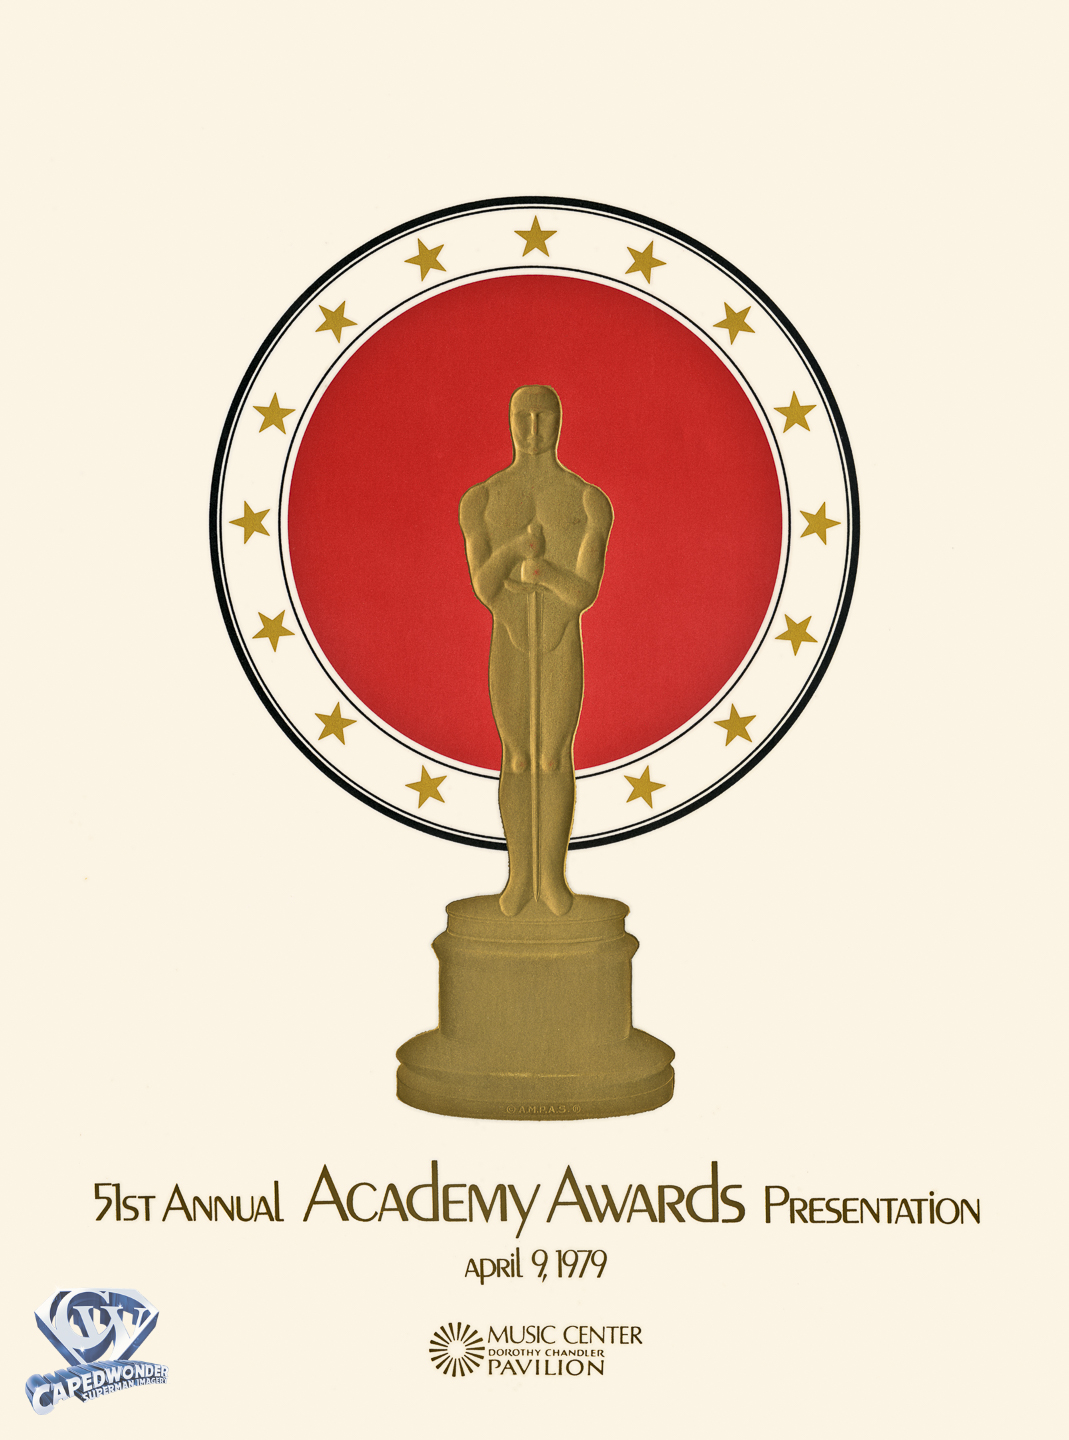 CW-STM-51st-Academy-awards-1979-program-1